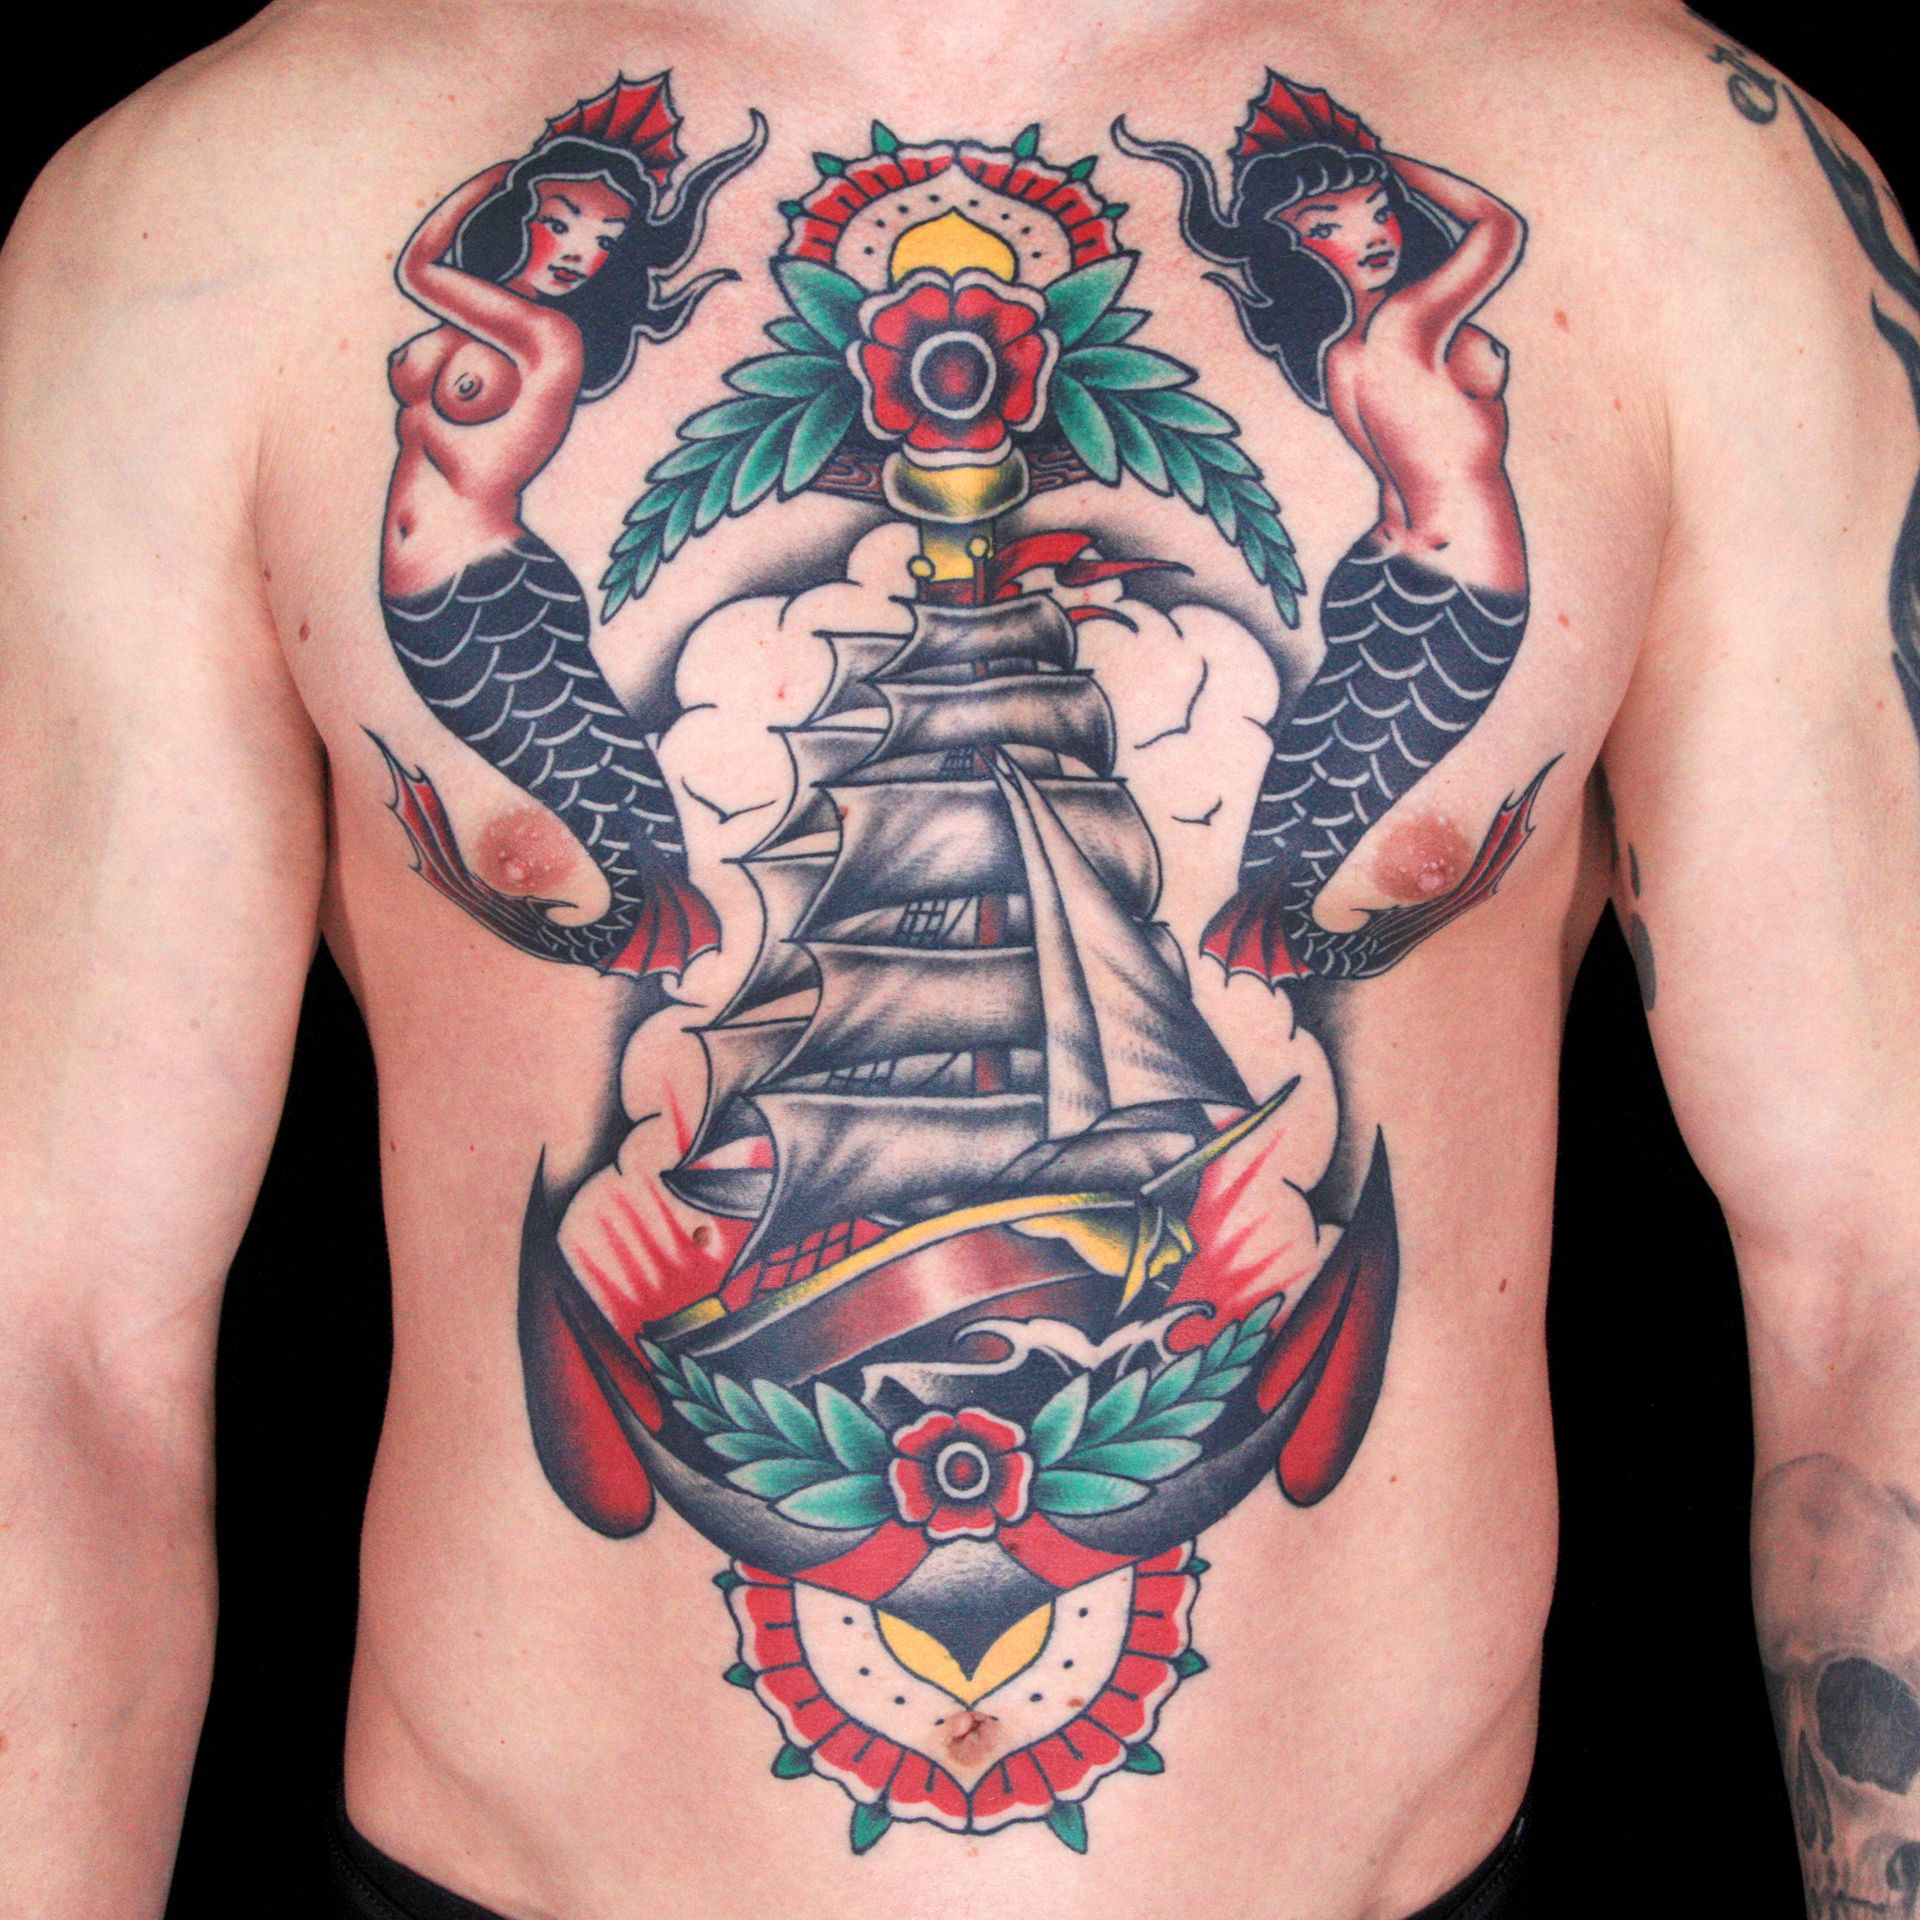 24 Hour Master Canvases Ink Master Paramount Network Ideas And Designs